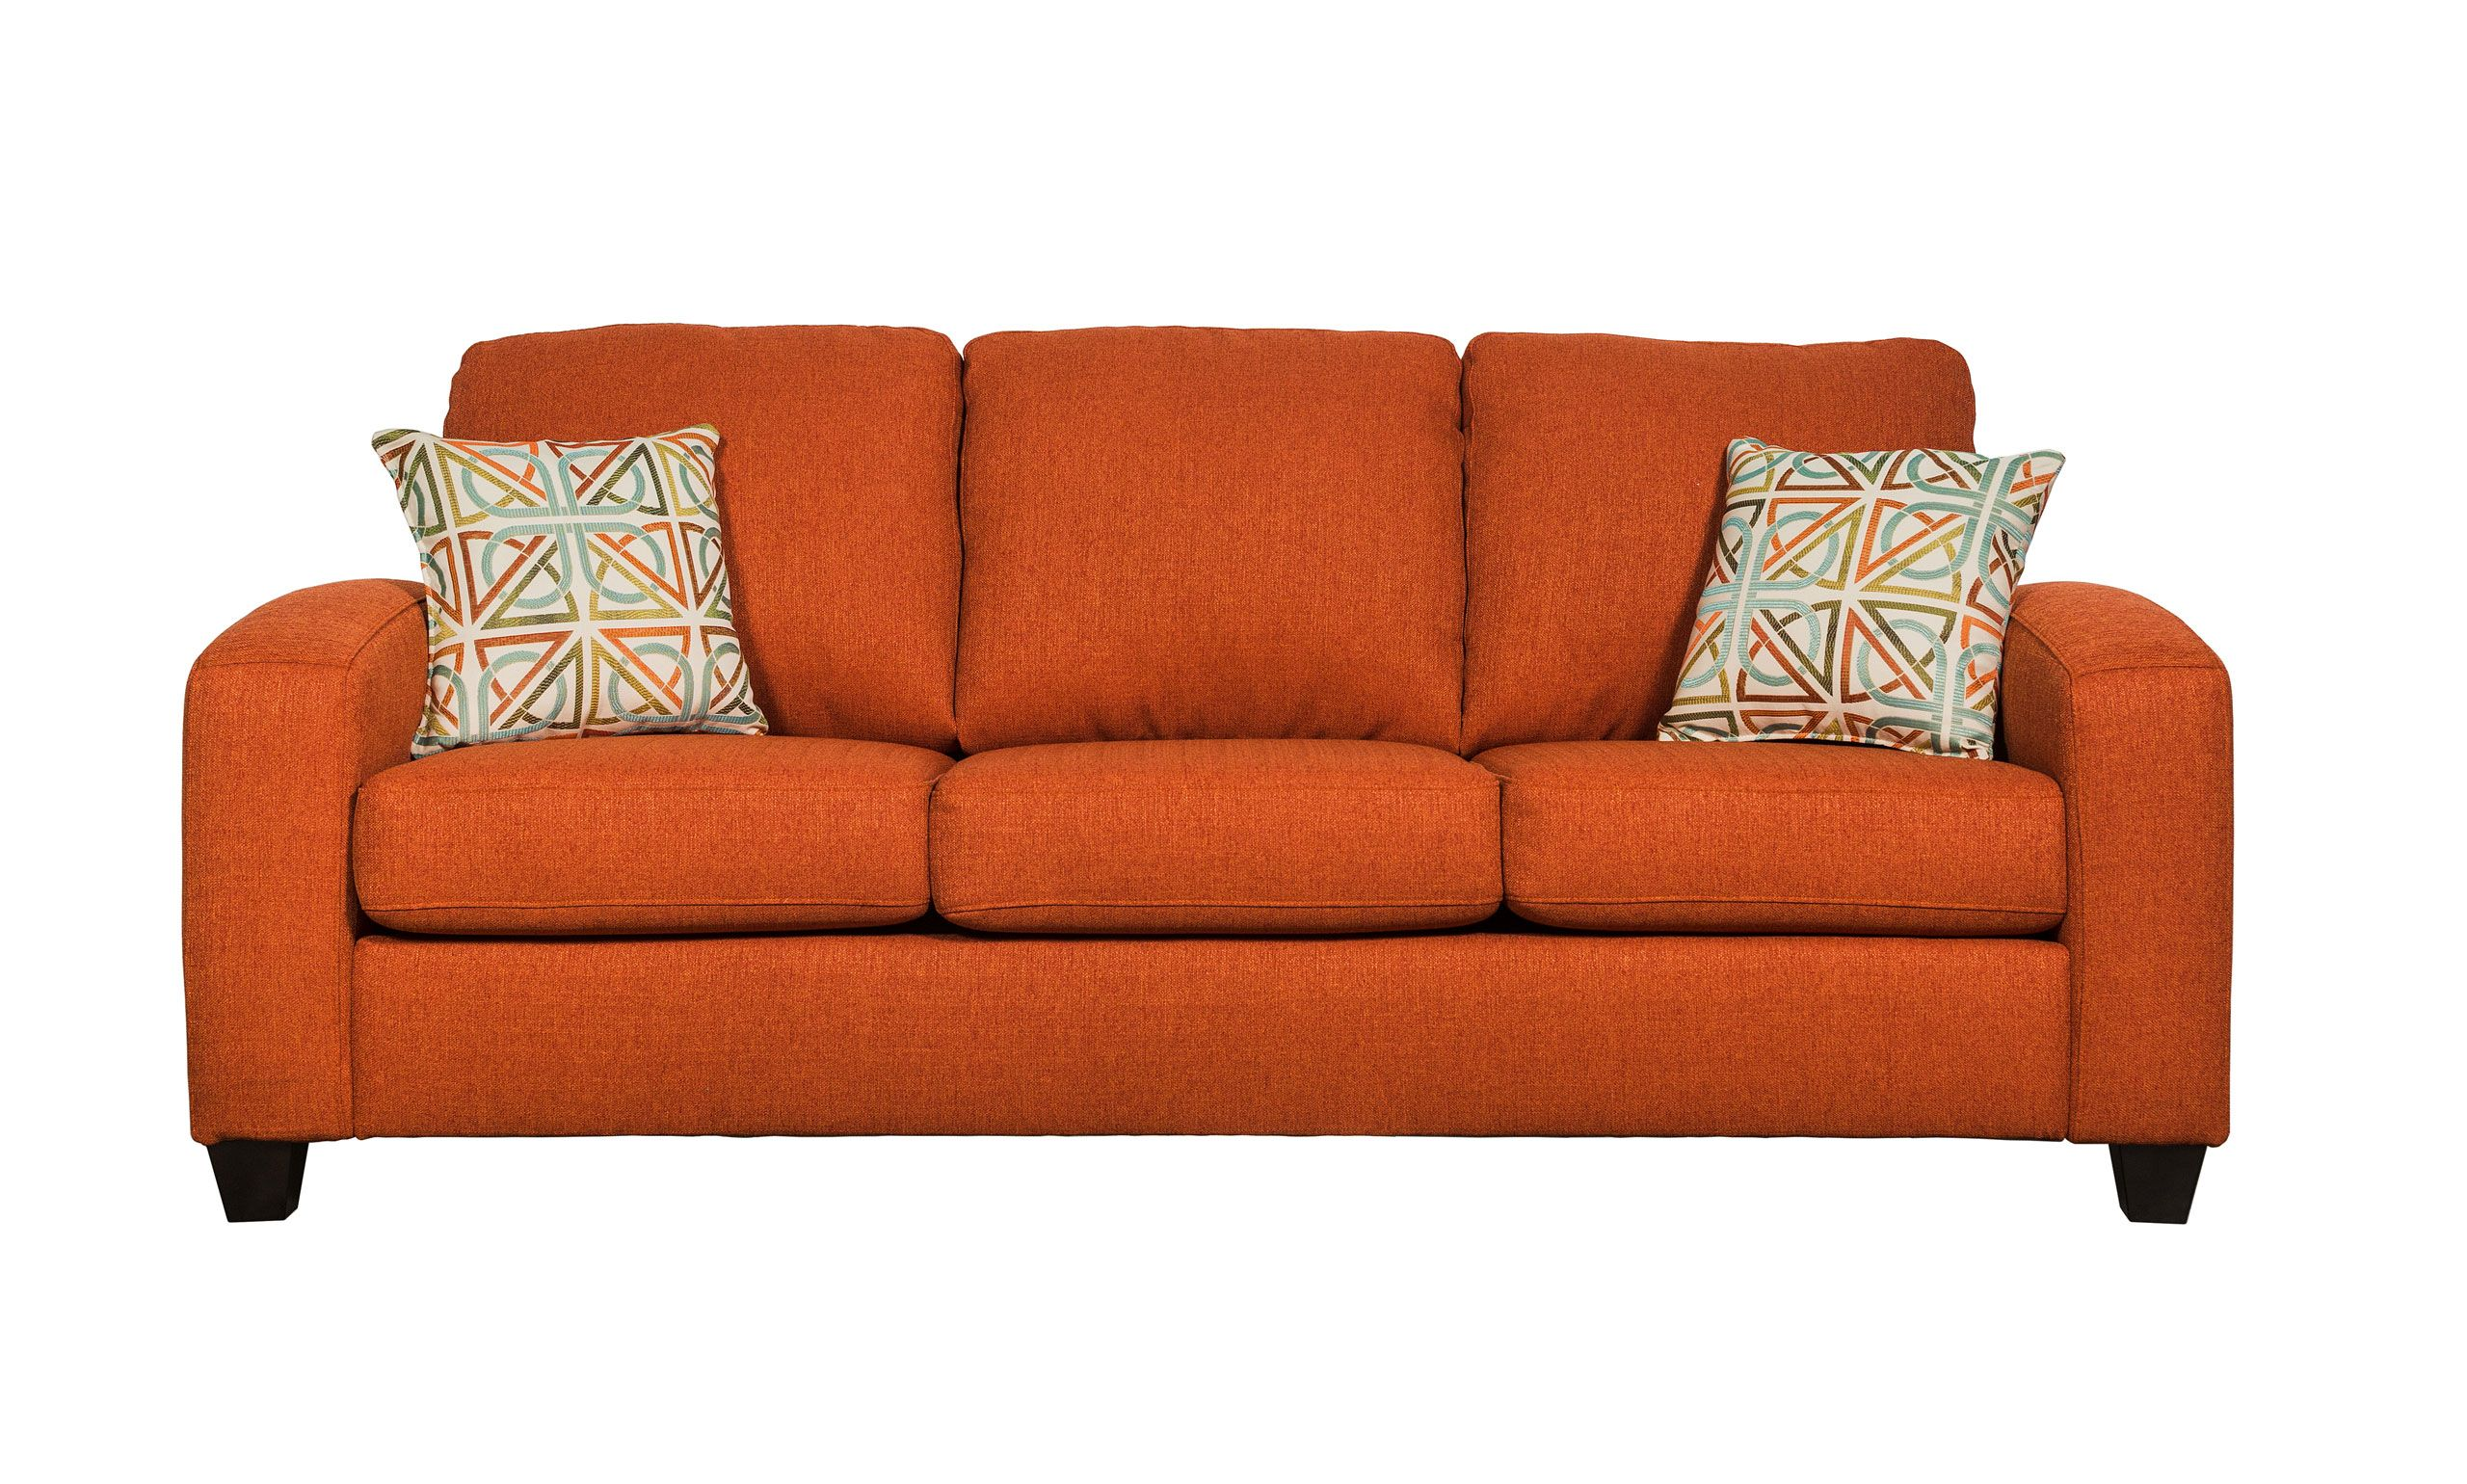 Canadian Made Dawson Sofa Only 1099 Price Includes Tax Free Delivery Madeincanada Palluccifurniture Vancouver